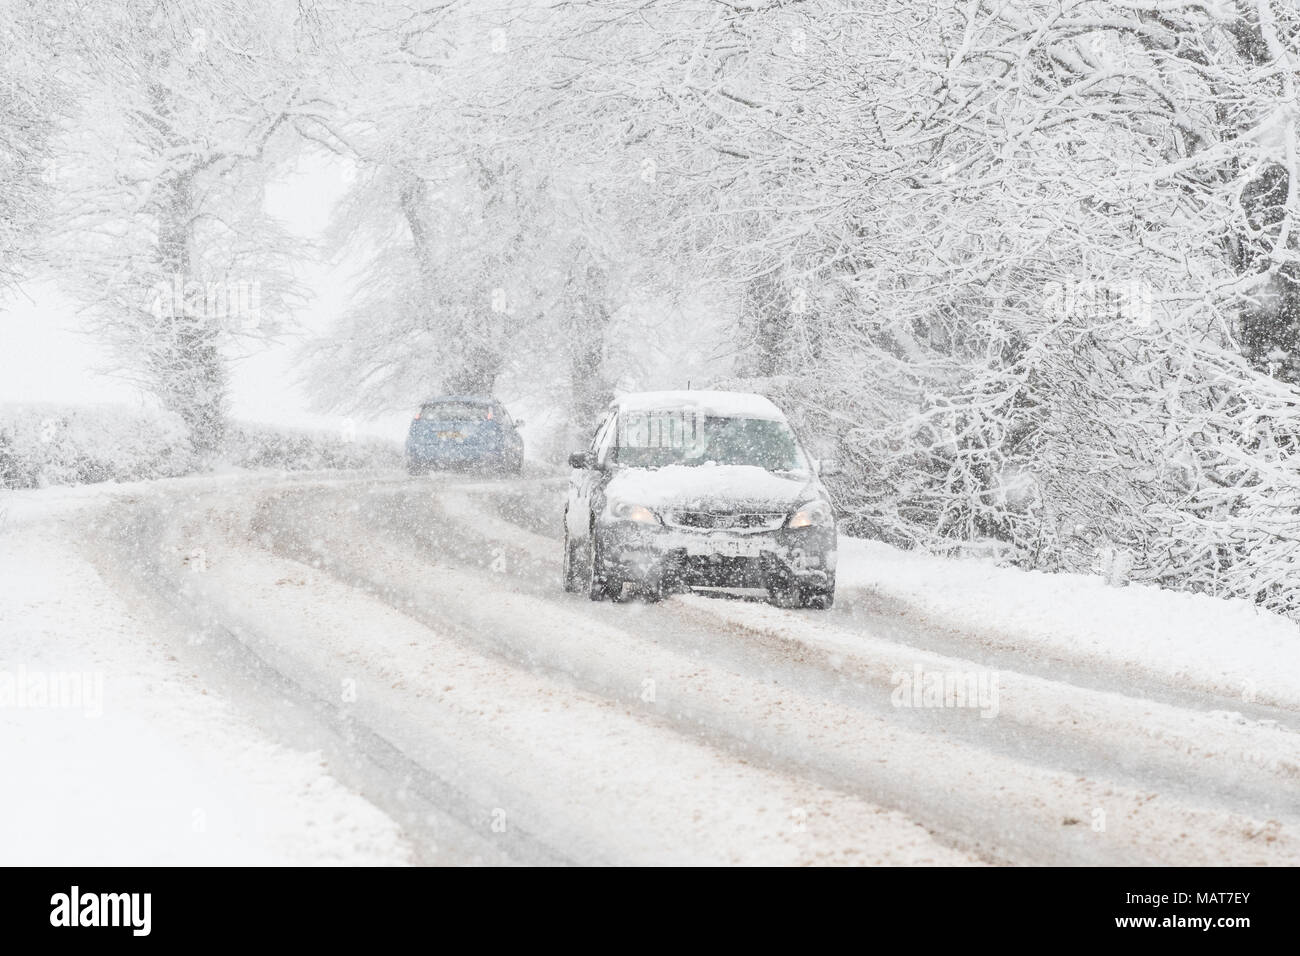 Stirlingshire, Scotland, UK - 4 April 2018: UK weather - tricky driving conditions on the A811 road this morning as the central belt wakes up to more snow Credit: Kay Roxby/Alamy Live News - Stock Image